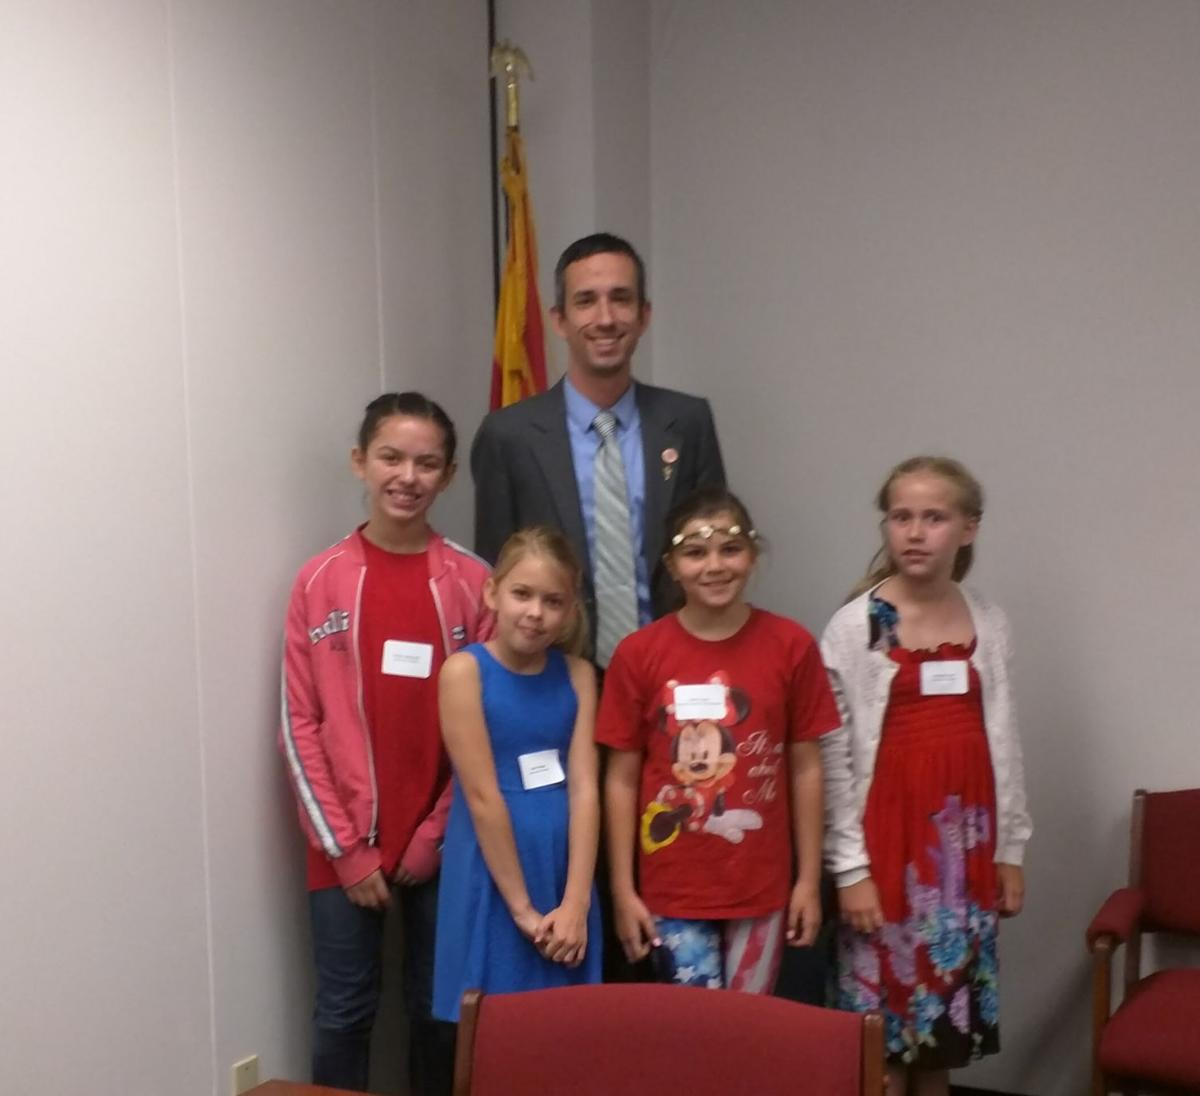 State Sen. Sean Bowie was all smiles two weeks ago when some Kyrene School District children  visited the Capitol, but he wasn't smiling last week when the Senate expanded school vouchers.